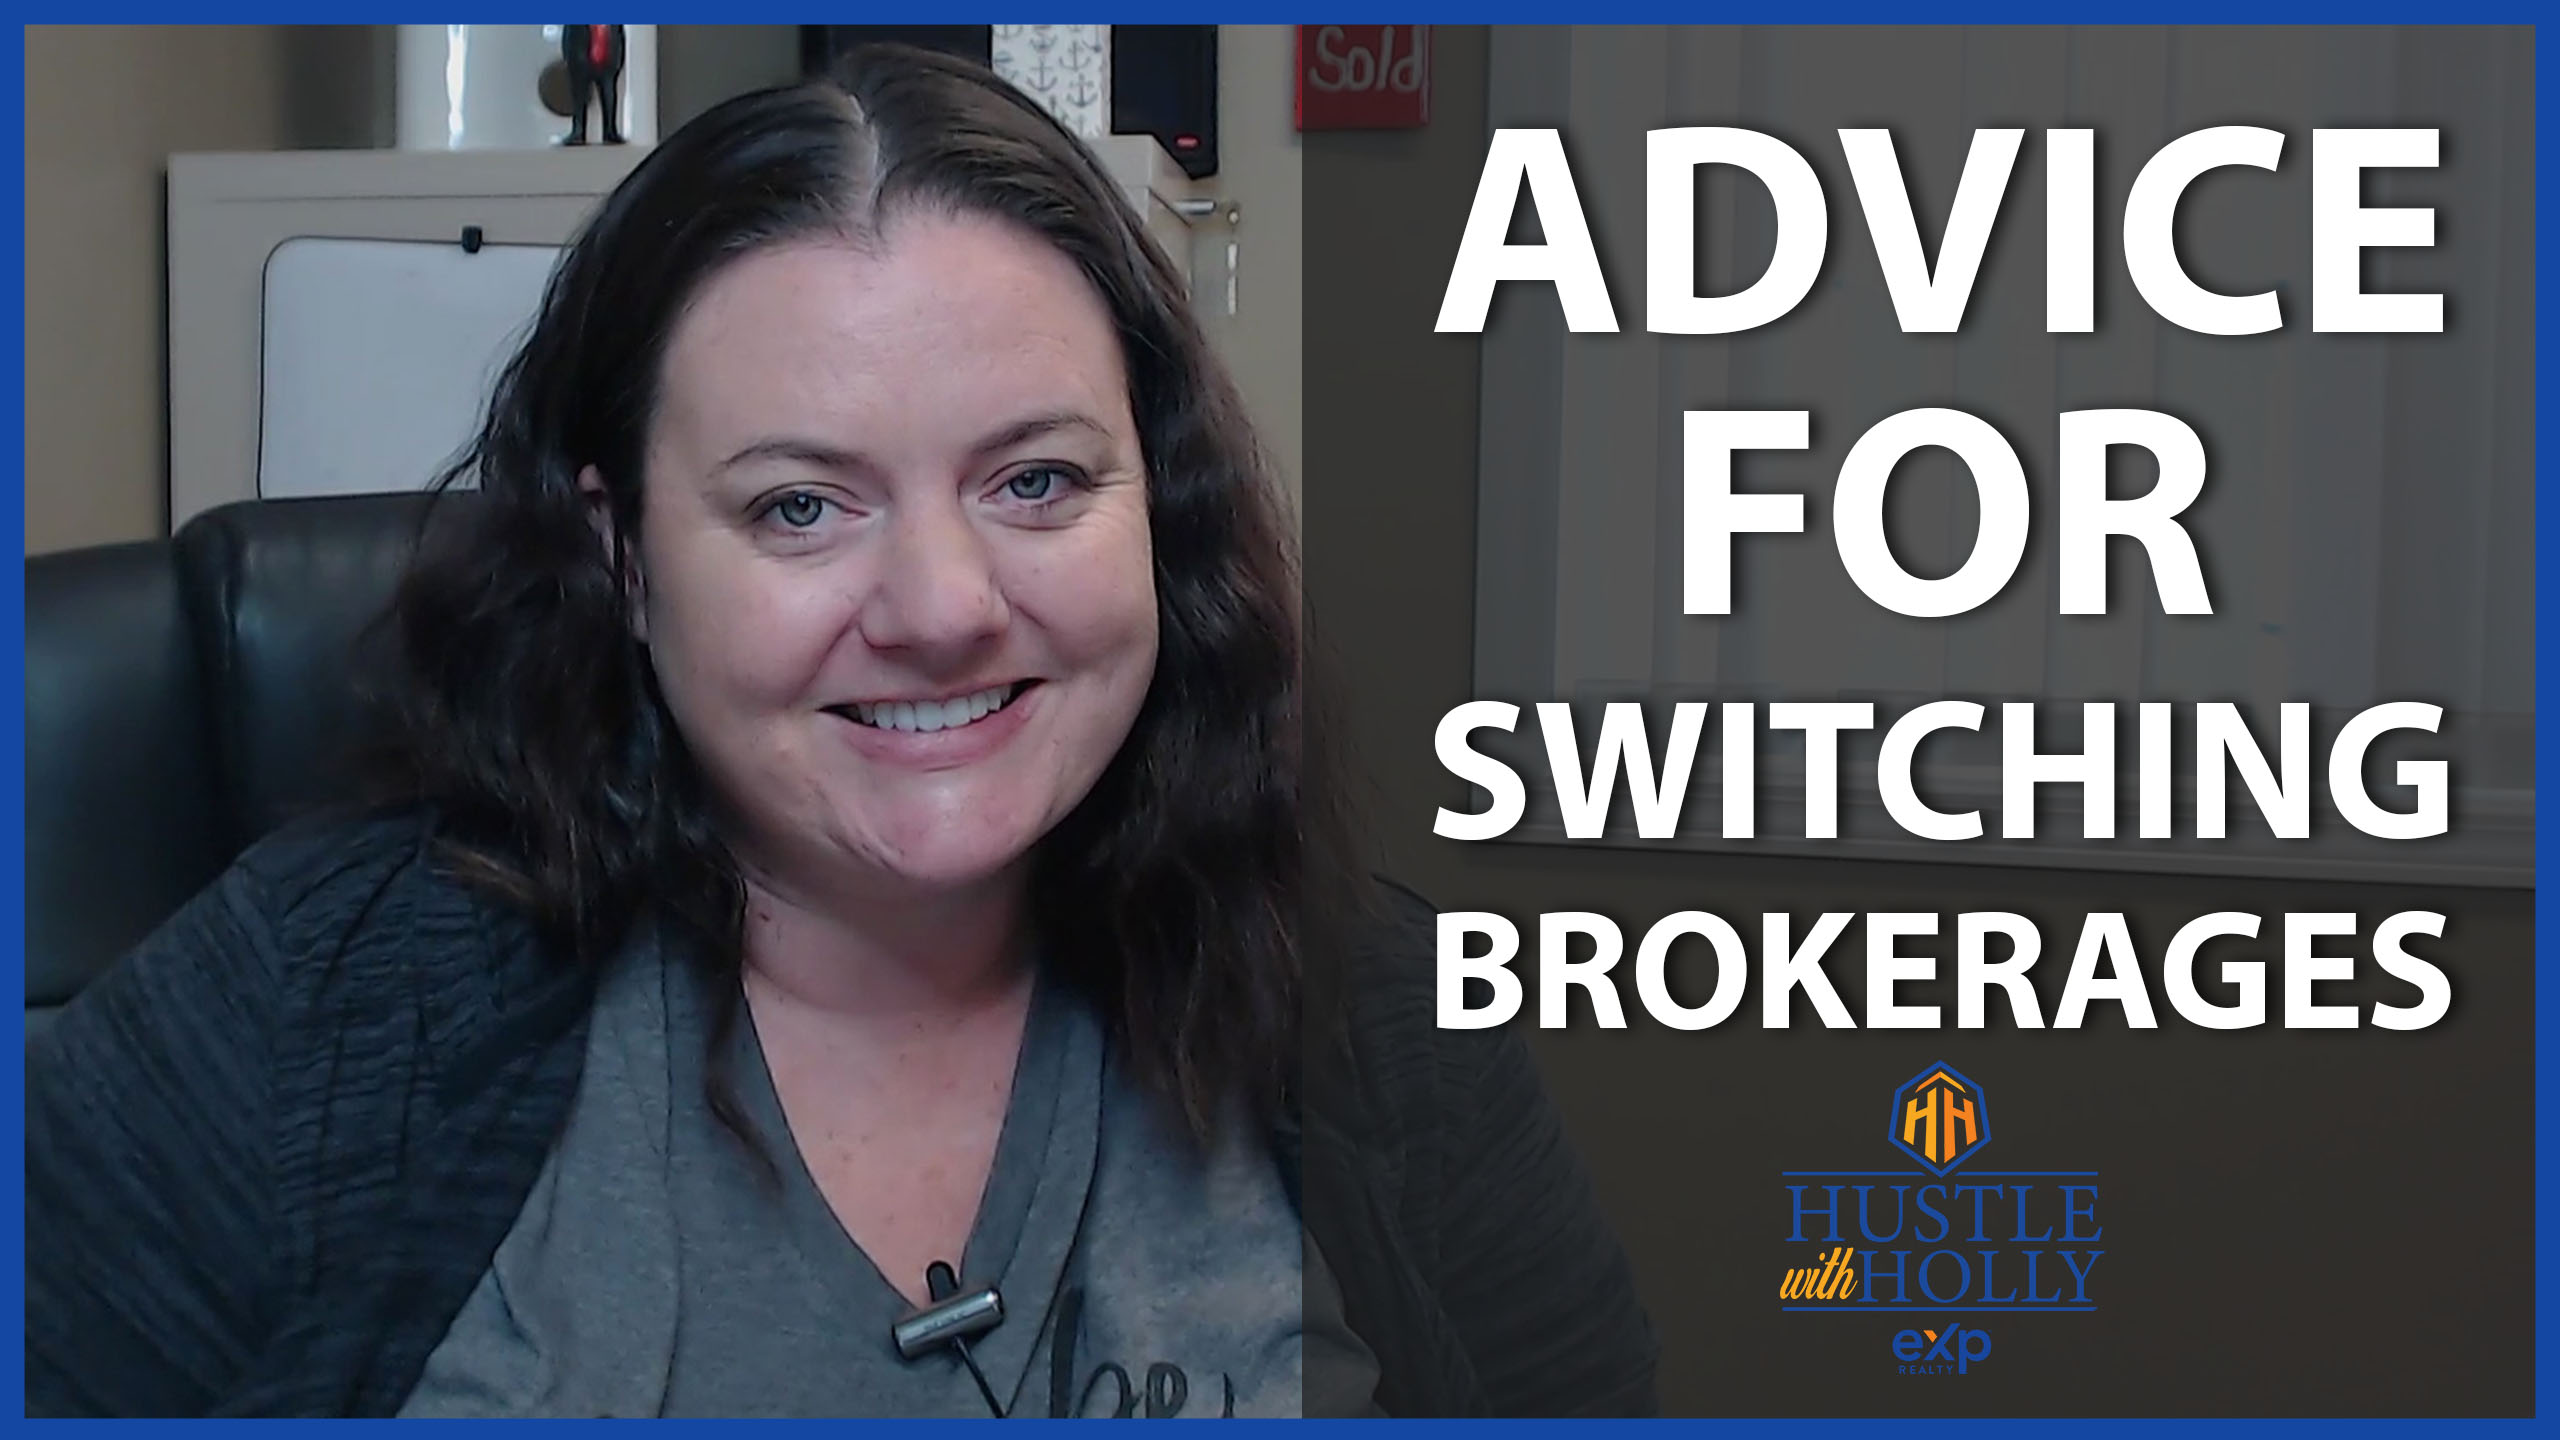 Q: When's the Best Time to Switch Brokerages?